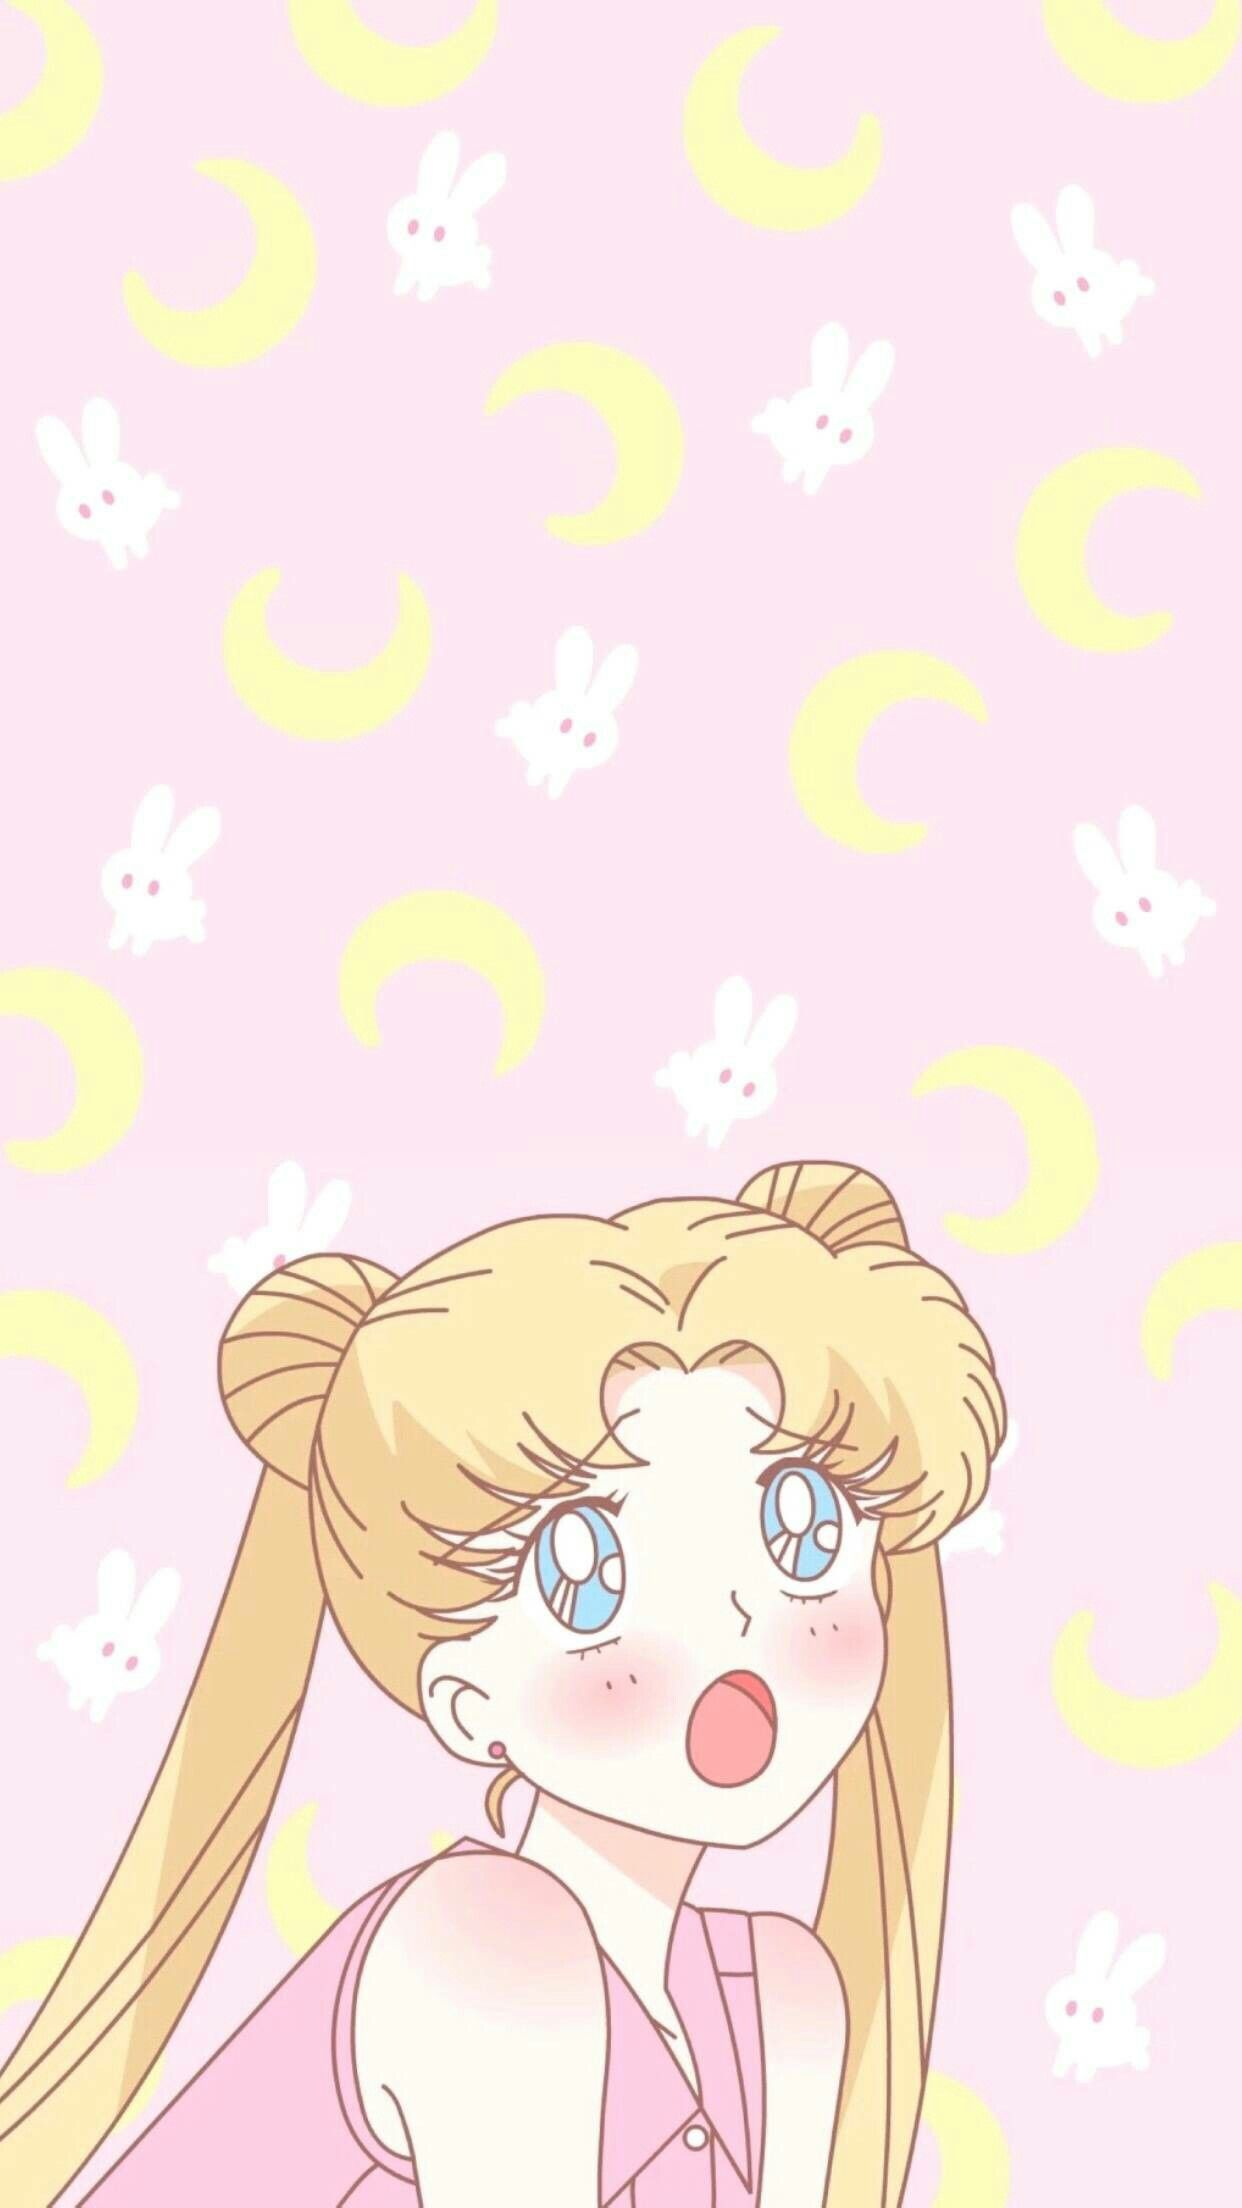 Anime Sailor Moon Usagi Tsukino Sailor Moon Wallpaper Sailor Moon Aesthetic Sailor Moon Art